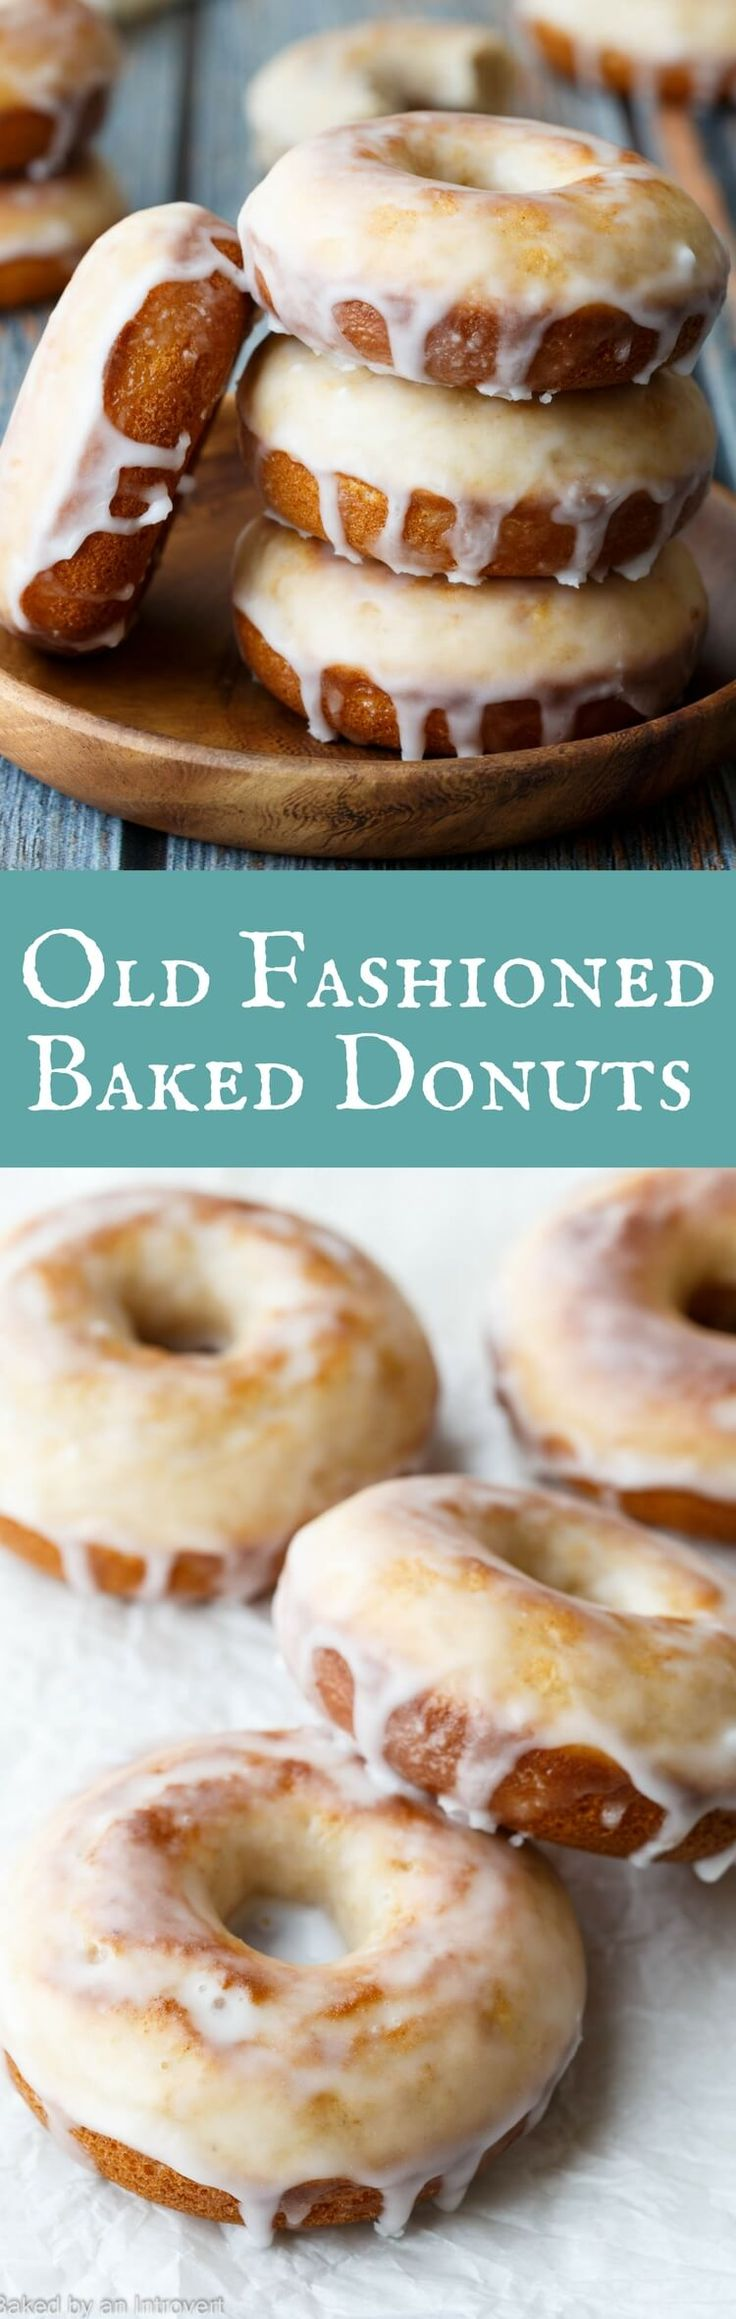 Hostess old fashioned glazed donuts 89